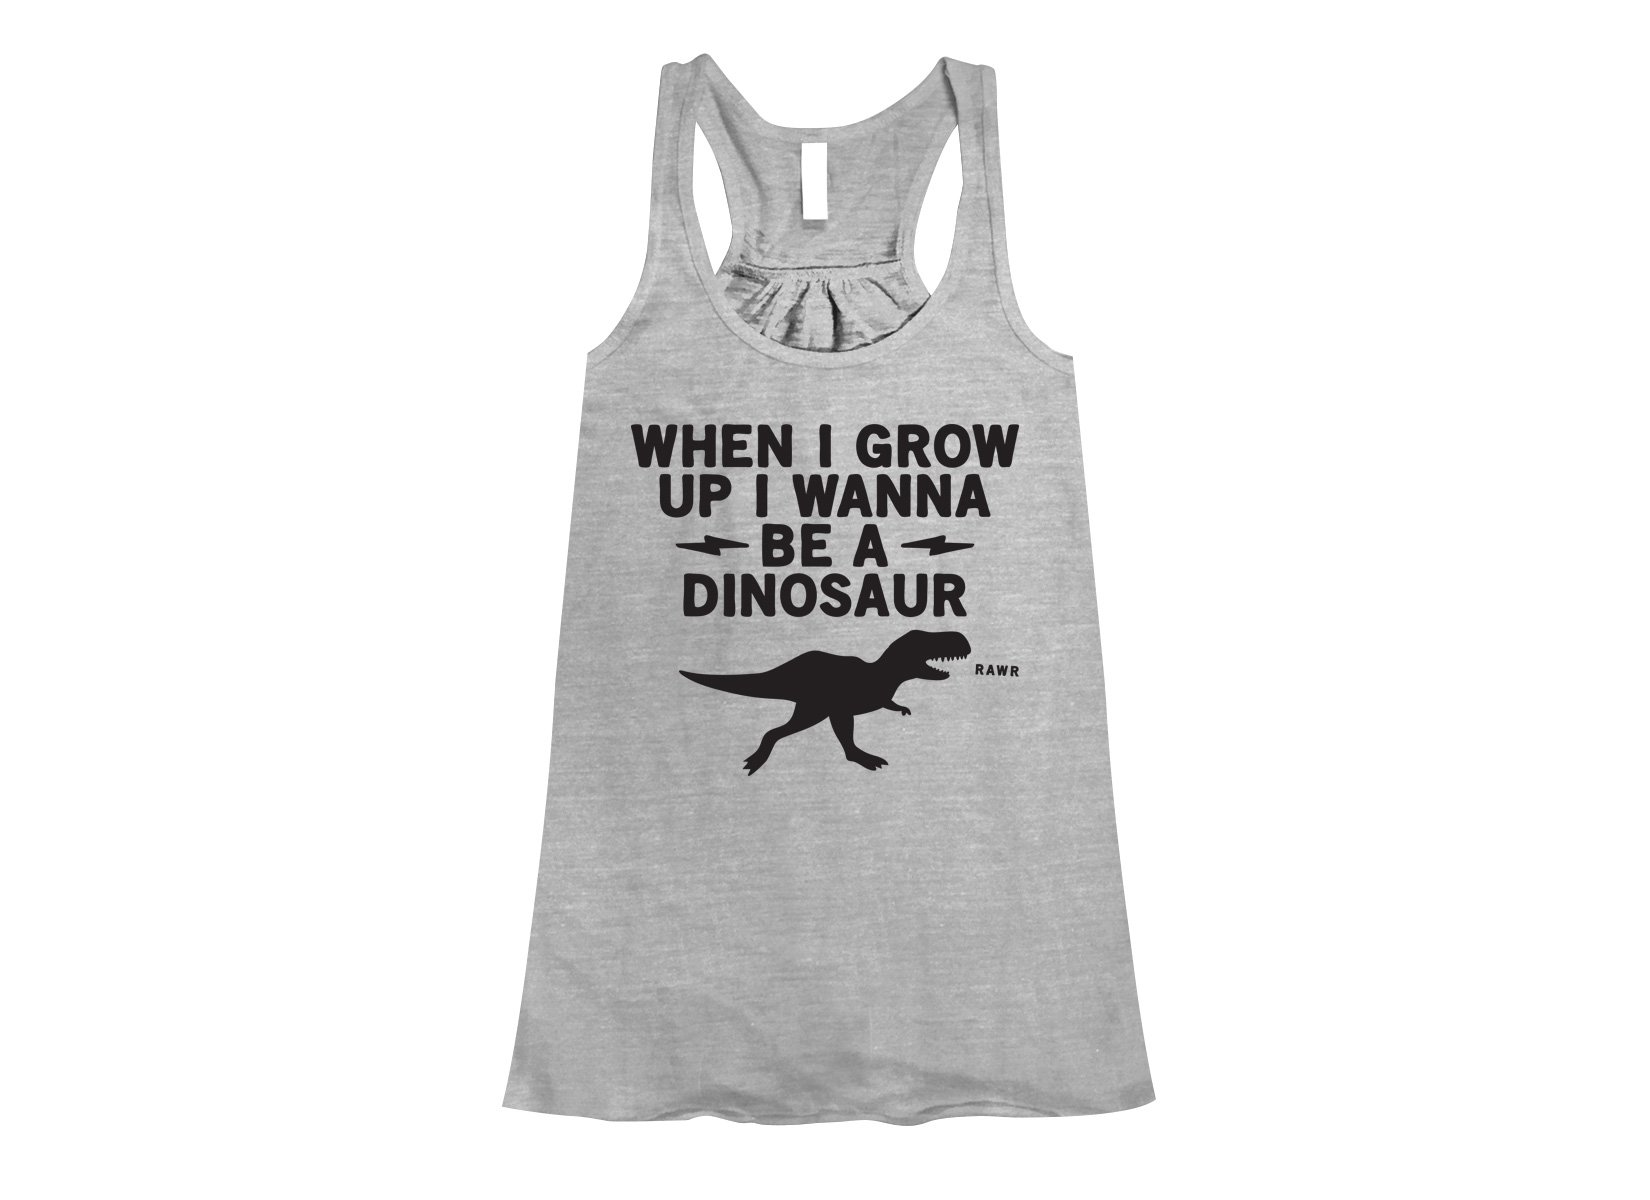 When I Grow Up I Wanna Be A Dinosaur on Womens Tanks T-Shirt